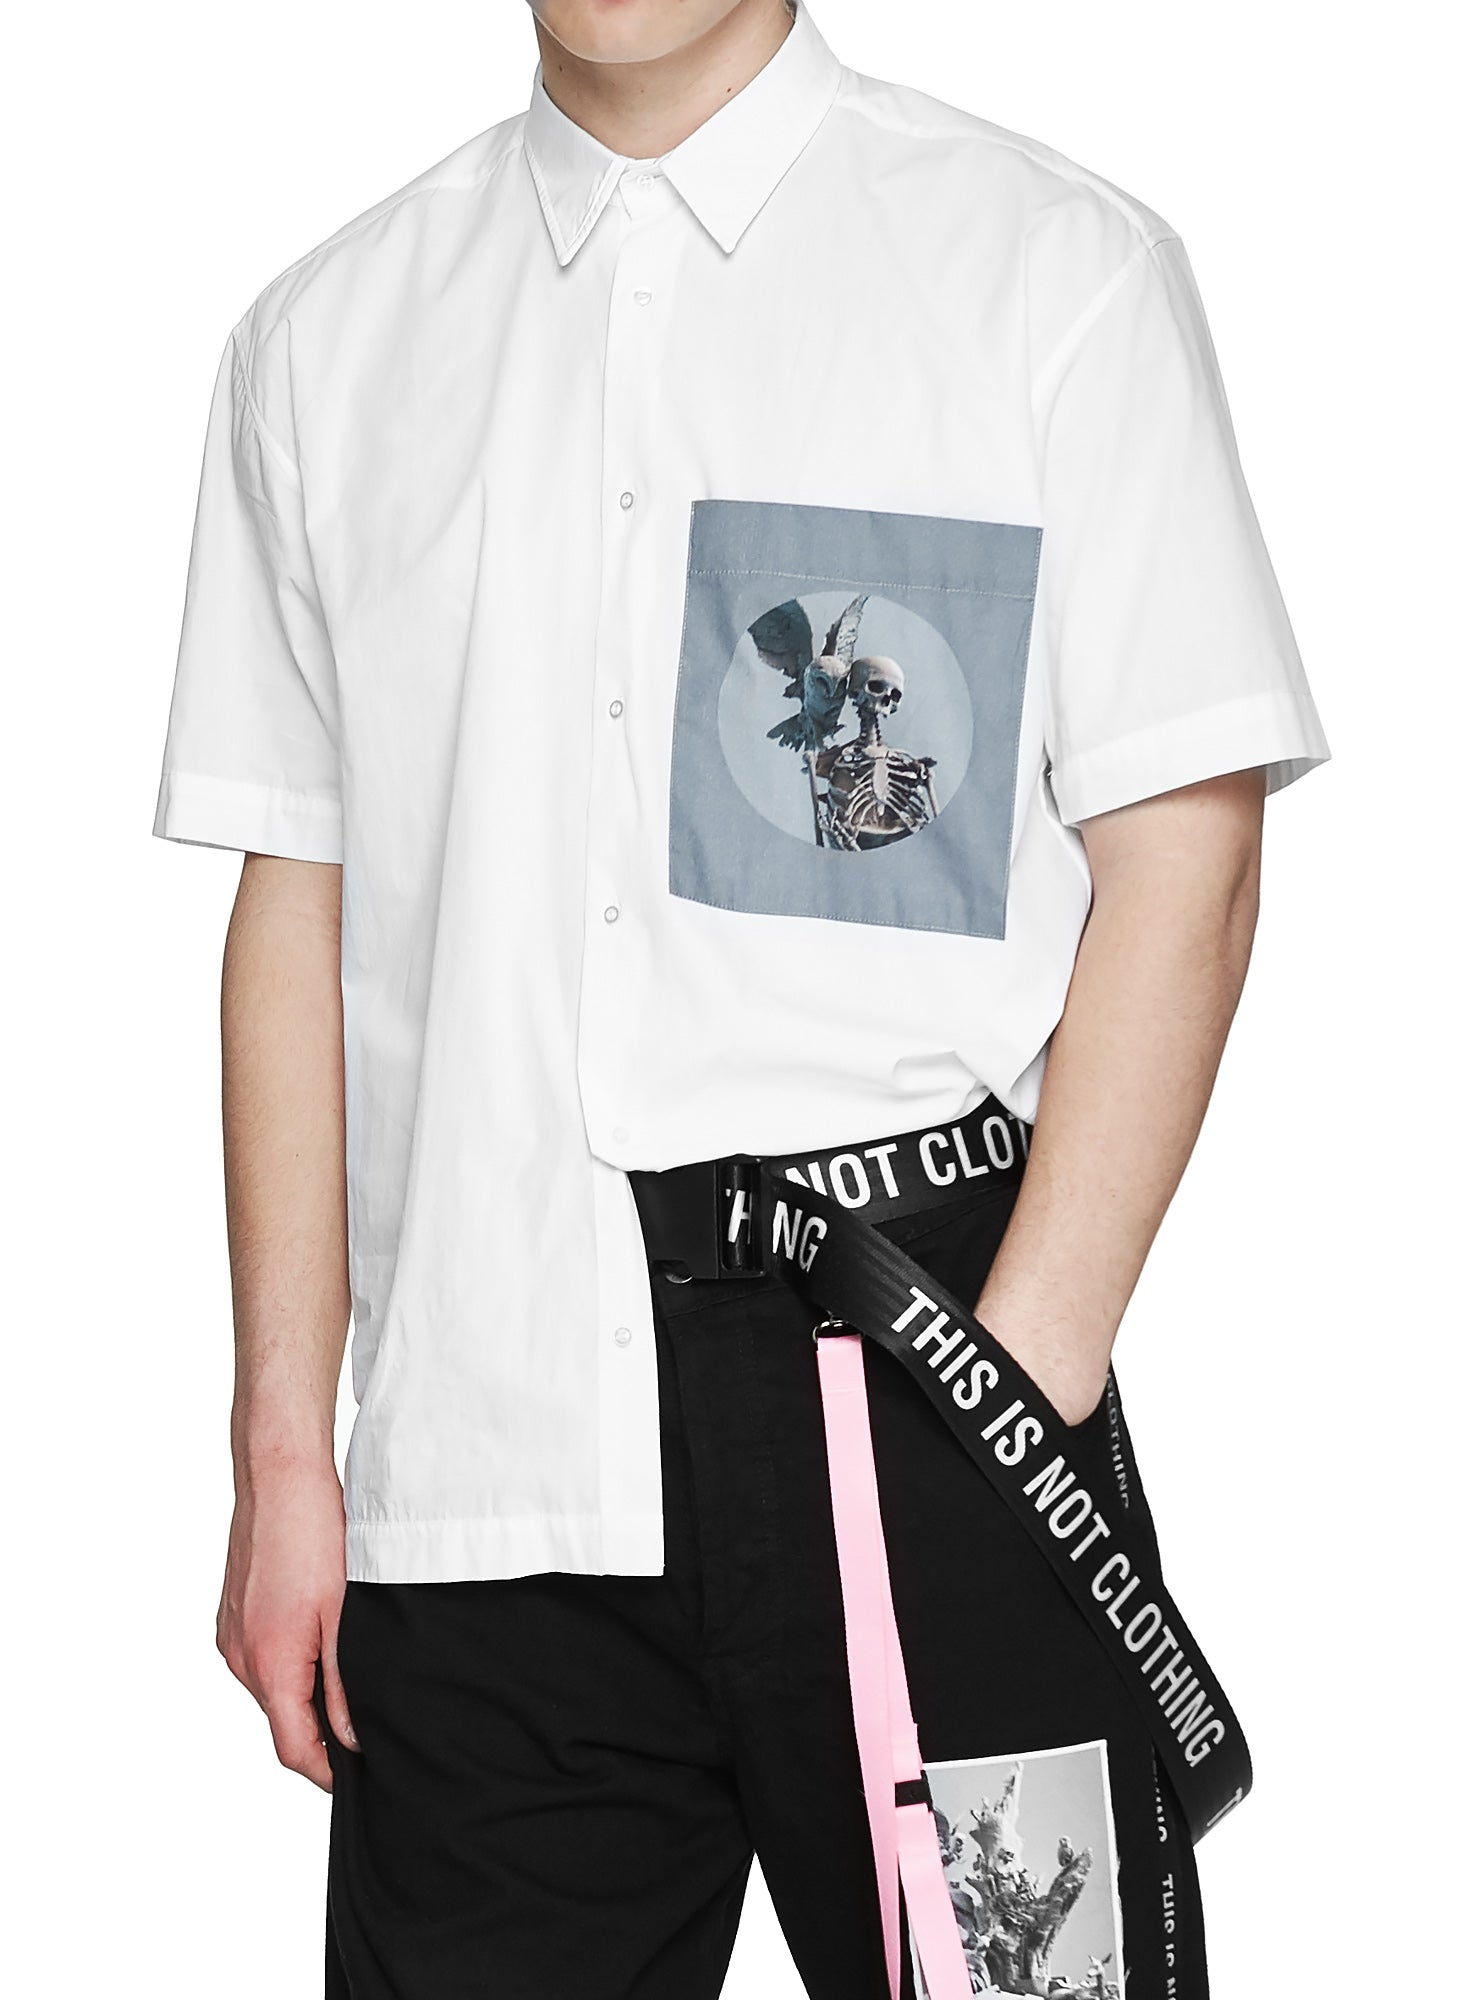 Fall of Paradise Short Sleeve Shirt - Designer Brand - This Is Not Clothing - Lookbook Photo 6